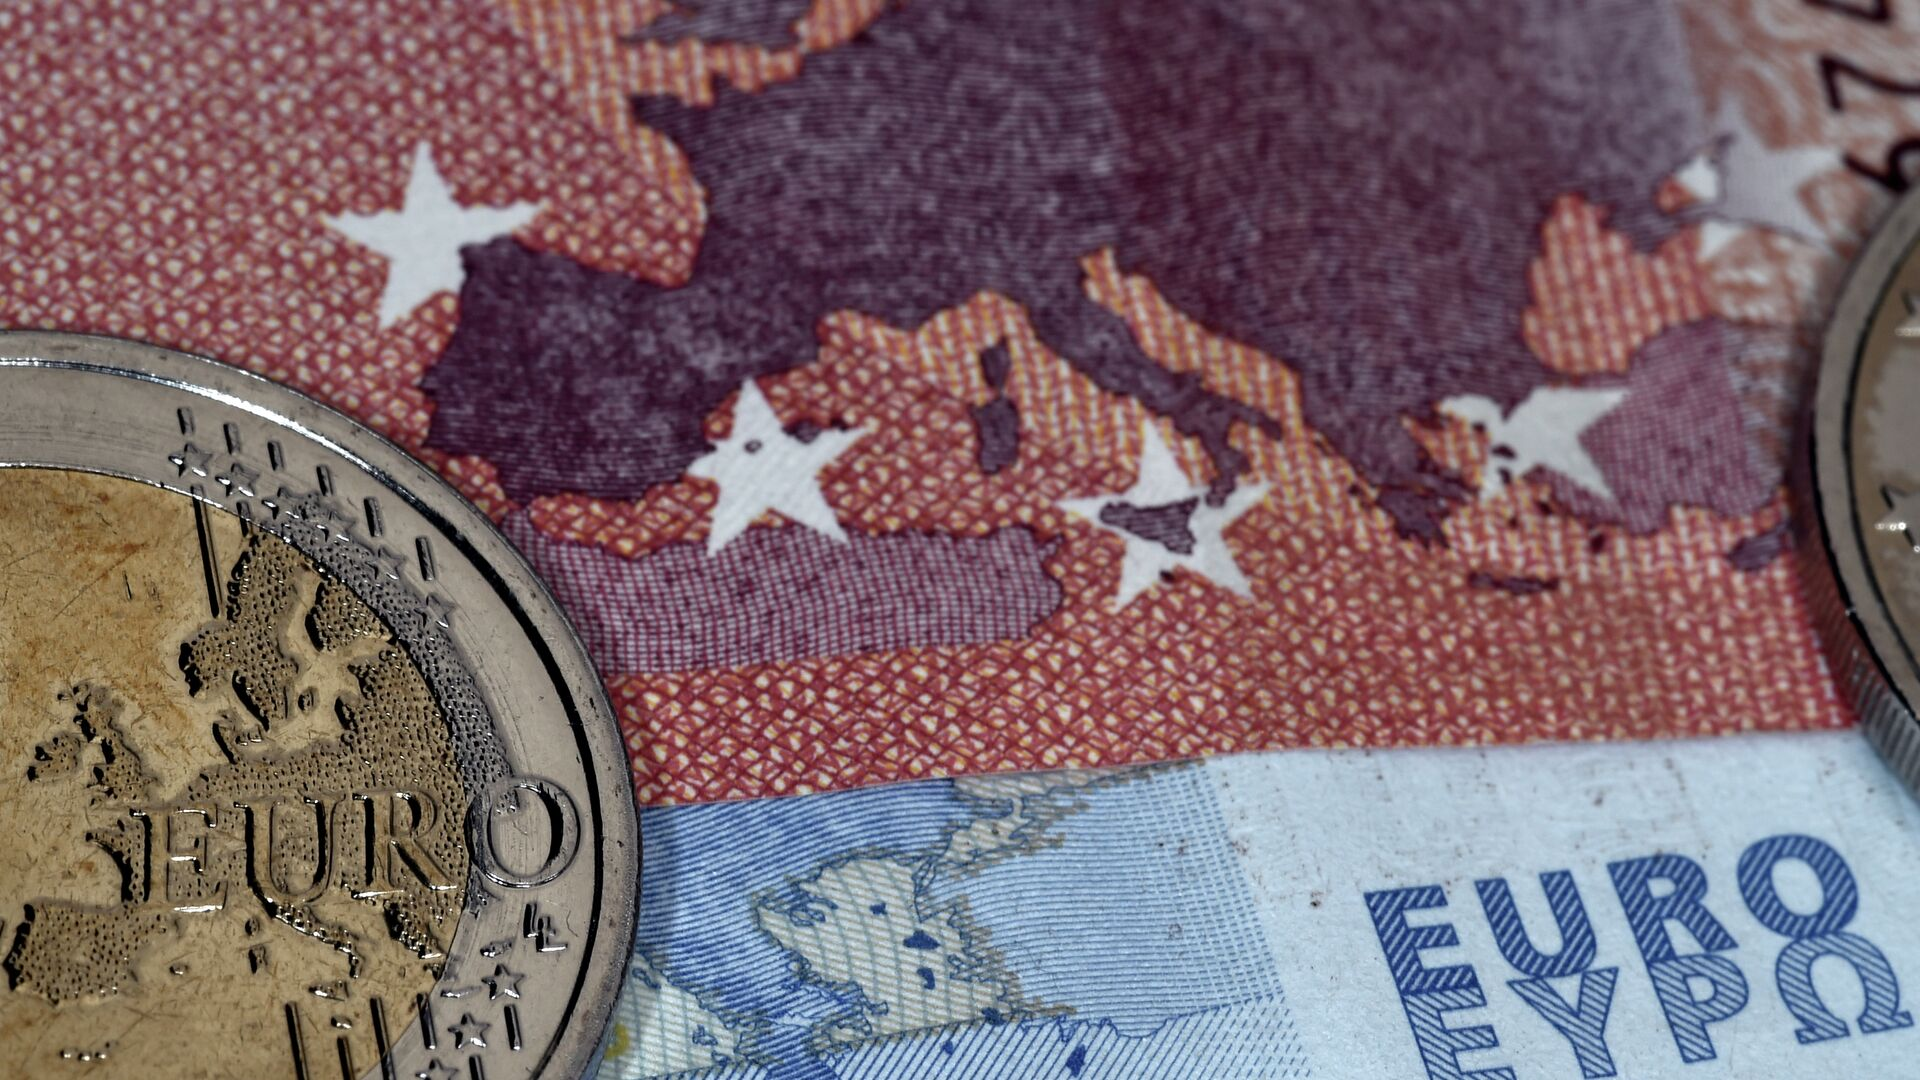 This photo taken in Athens on July 11, 2015 the map of Europe represented on a euro coin and banknotes - Sputnik Mundo, 1920, 13.07.2021